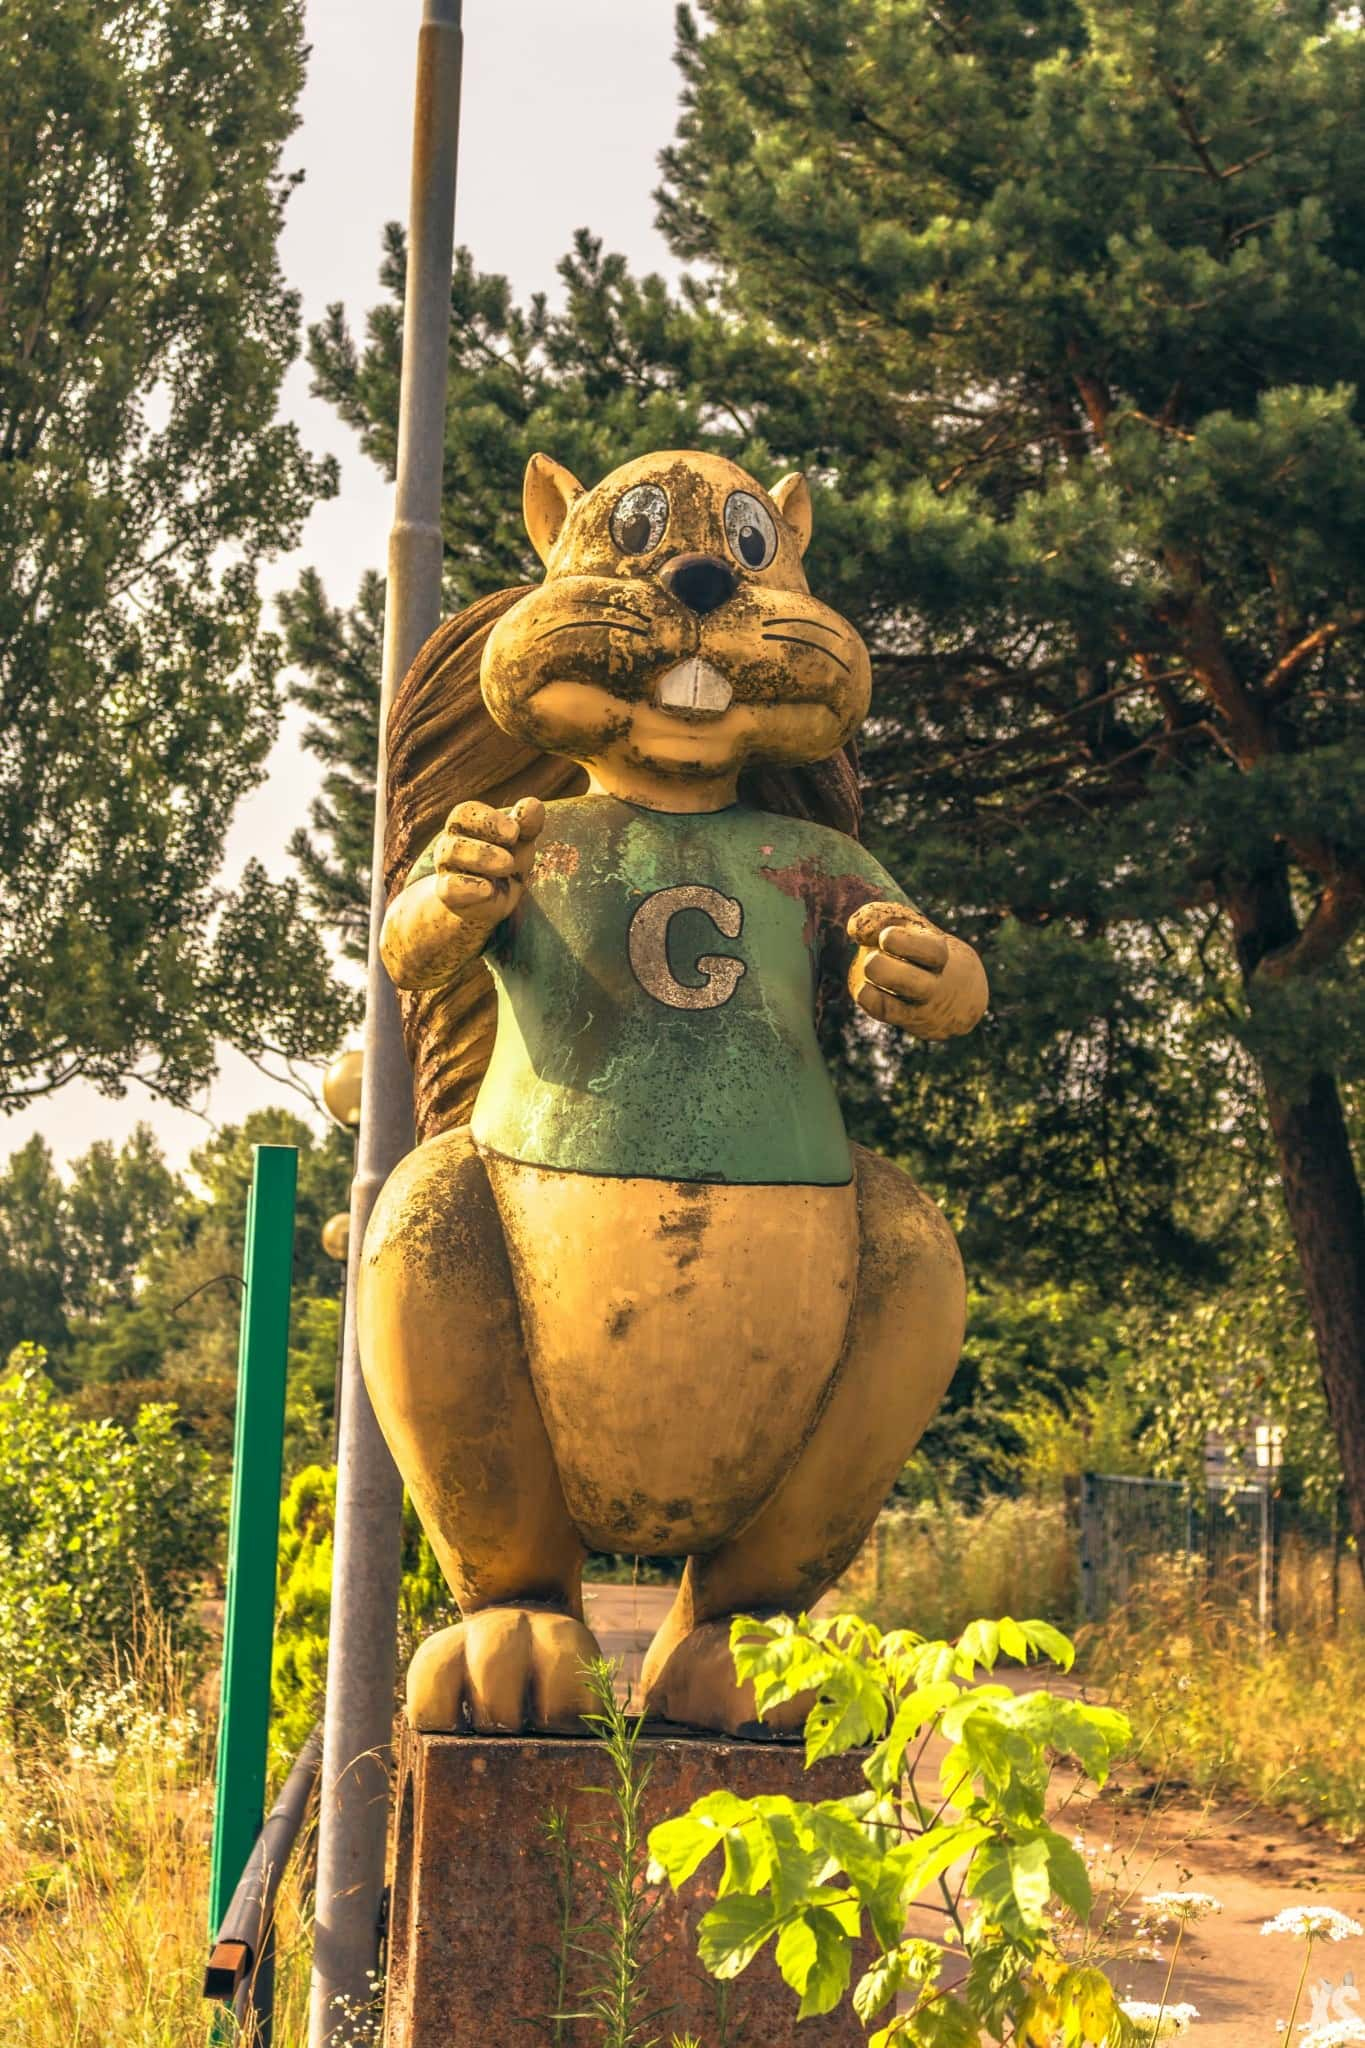 Parc d'attraction abandonné en Italie | urbexsession.com/beaver-land | Urbex Italie